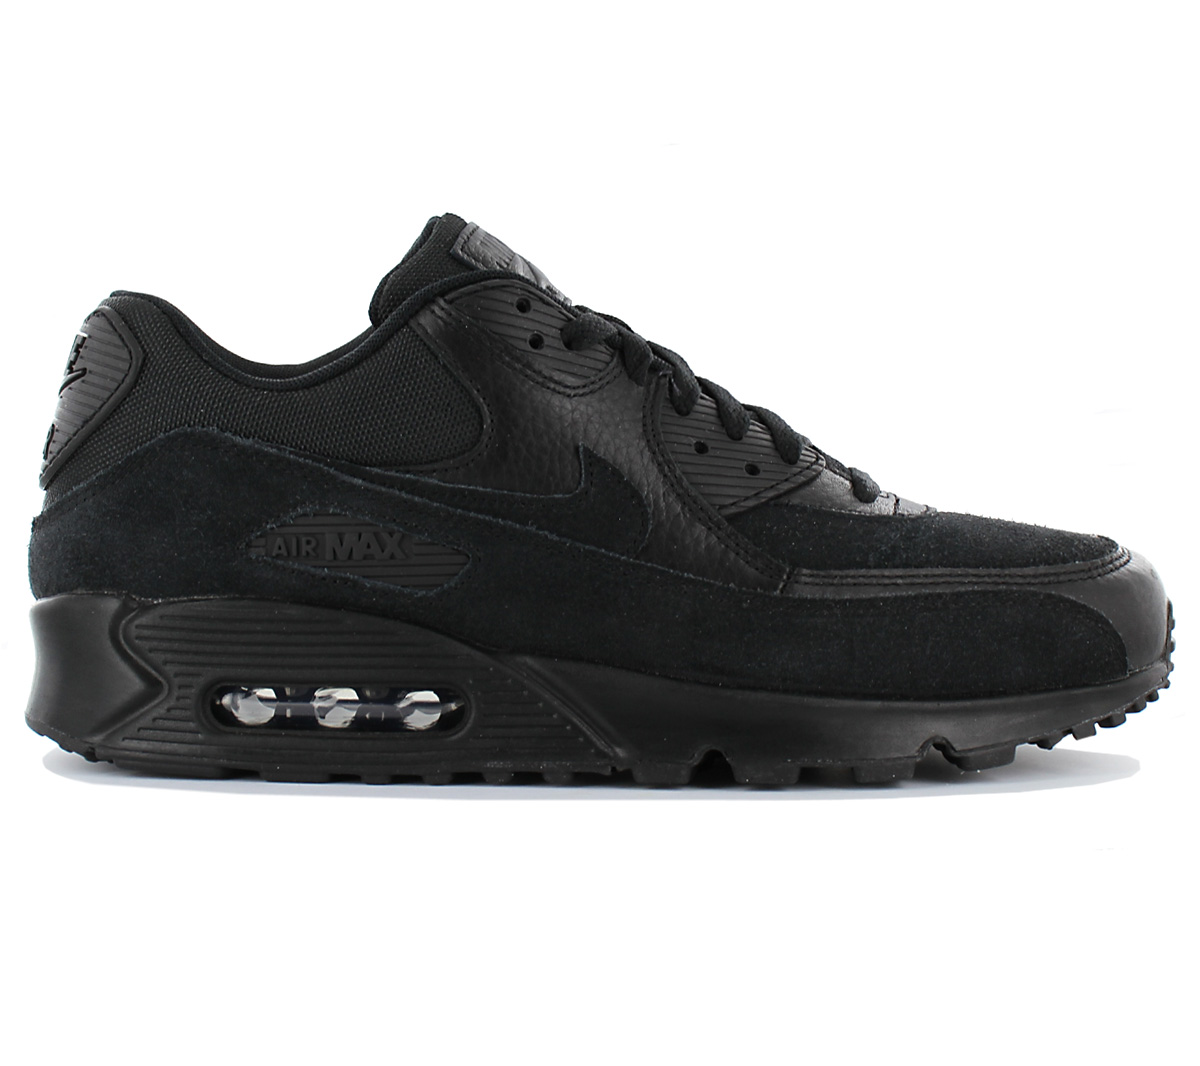 Details about Nike Air Max 90 Leather Premium Men's Shoes Sneaker Black 700155 012 New